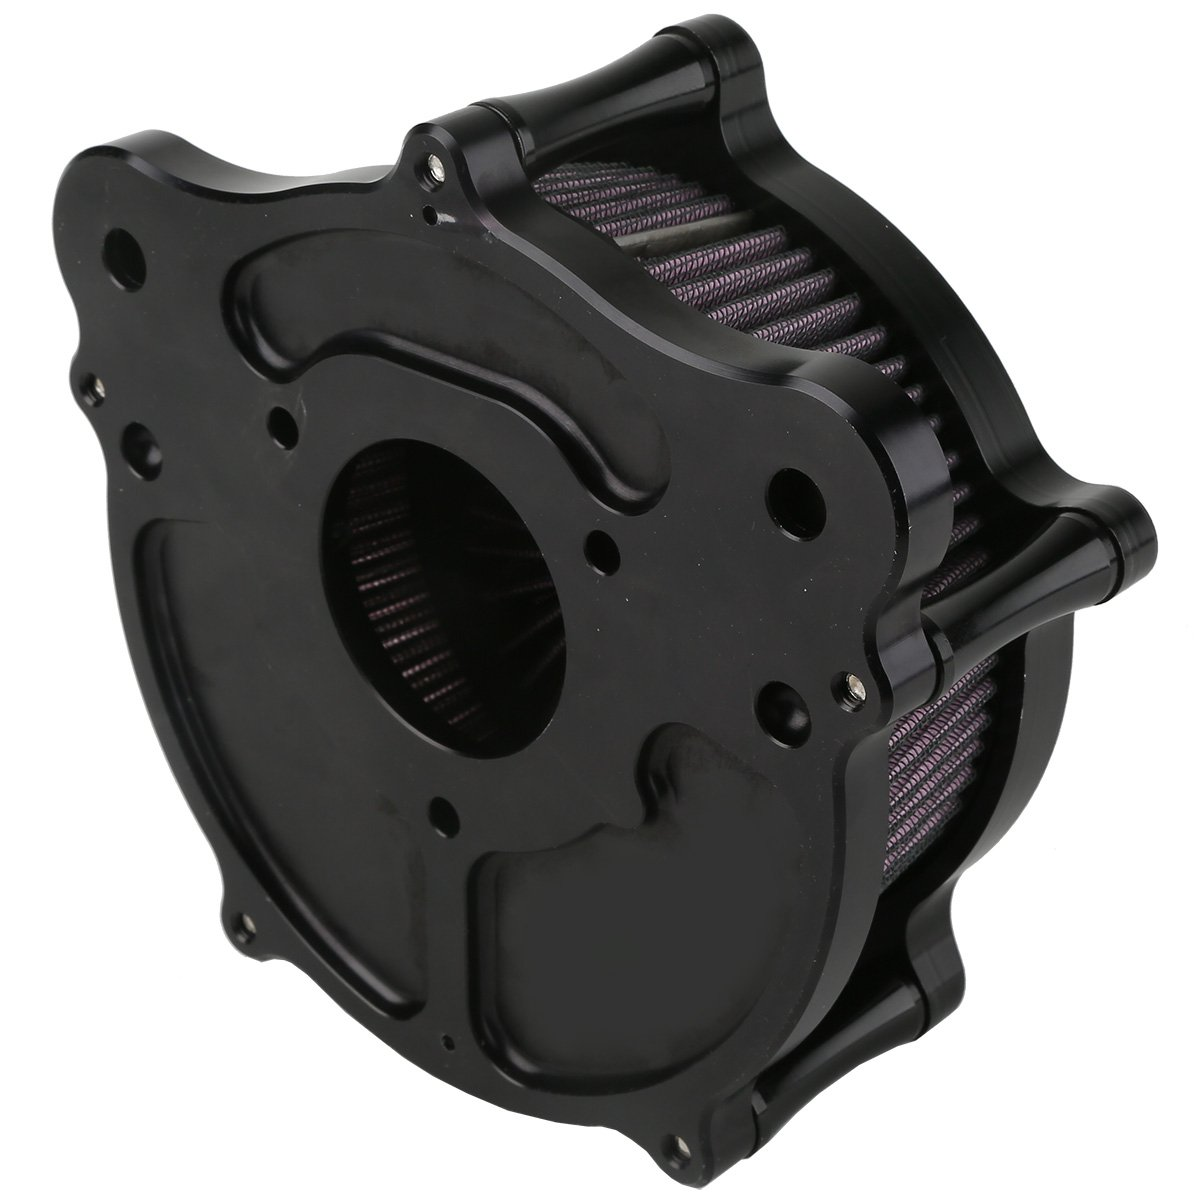 XMT-MOTO Speed-5 CNC Deep Cut Air Cleaner Filter For Harley Touring FLHR FLHT FLHX 2008-2016 by XMT-MOTO (Image #4)